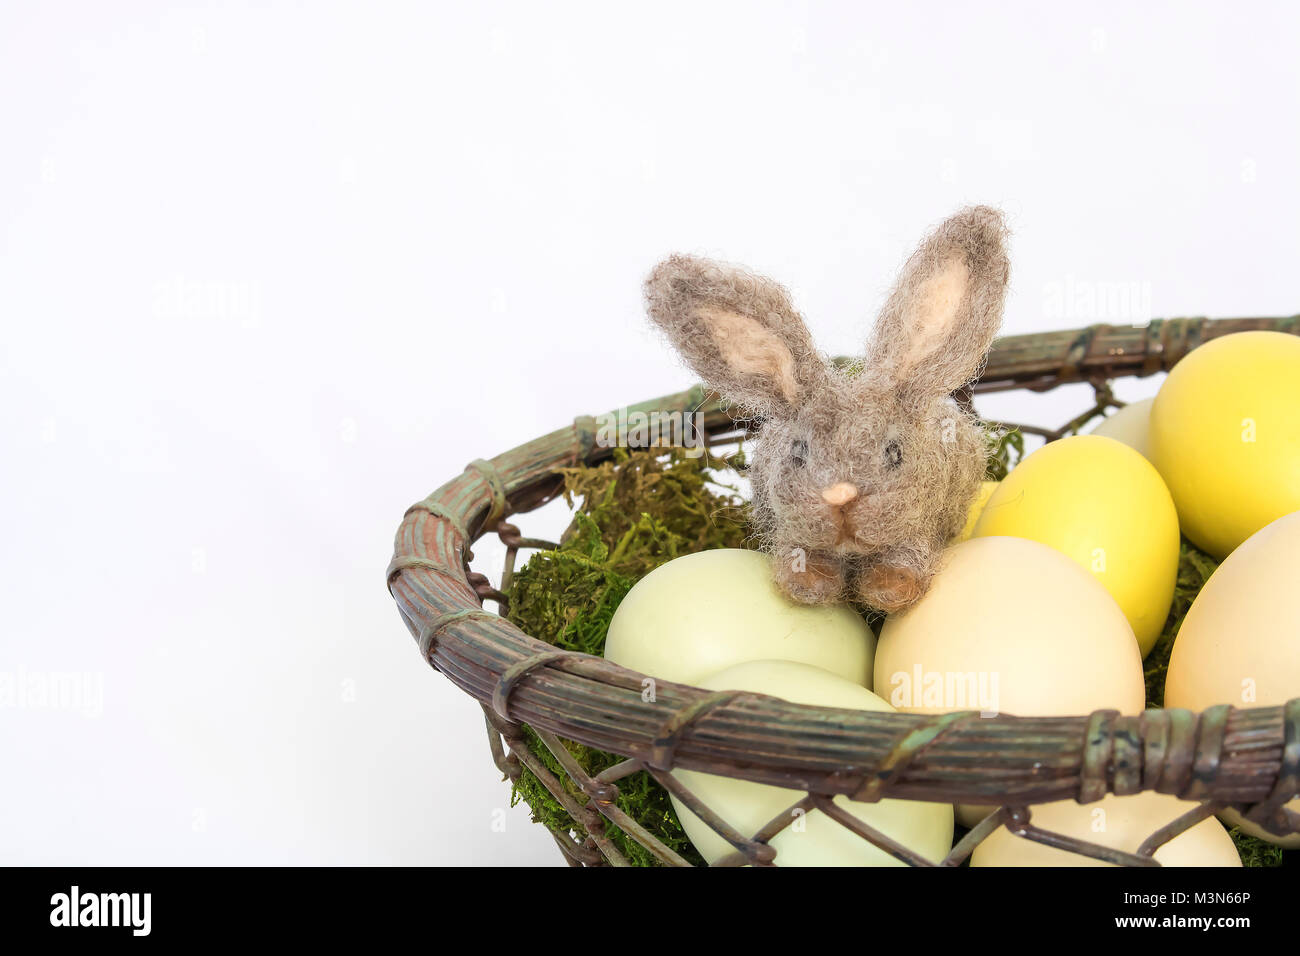 Small Easter Basket Stock Photos & Small Easter Basket Stock Images ...